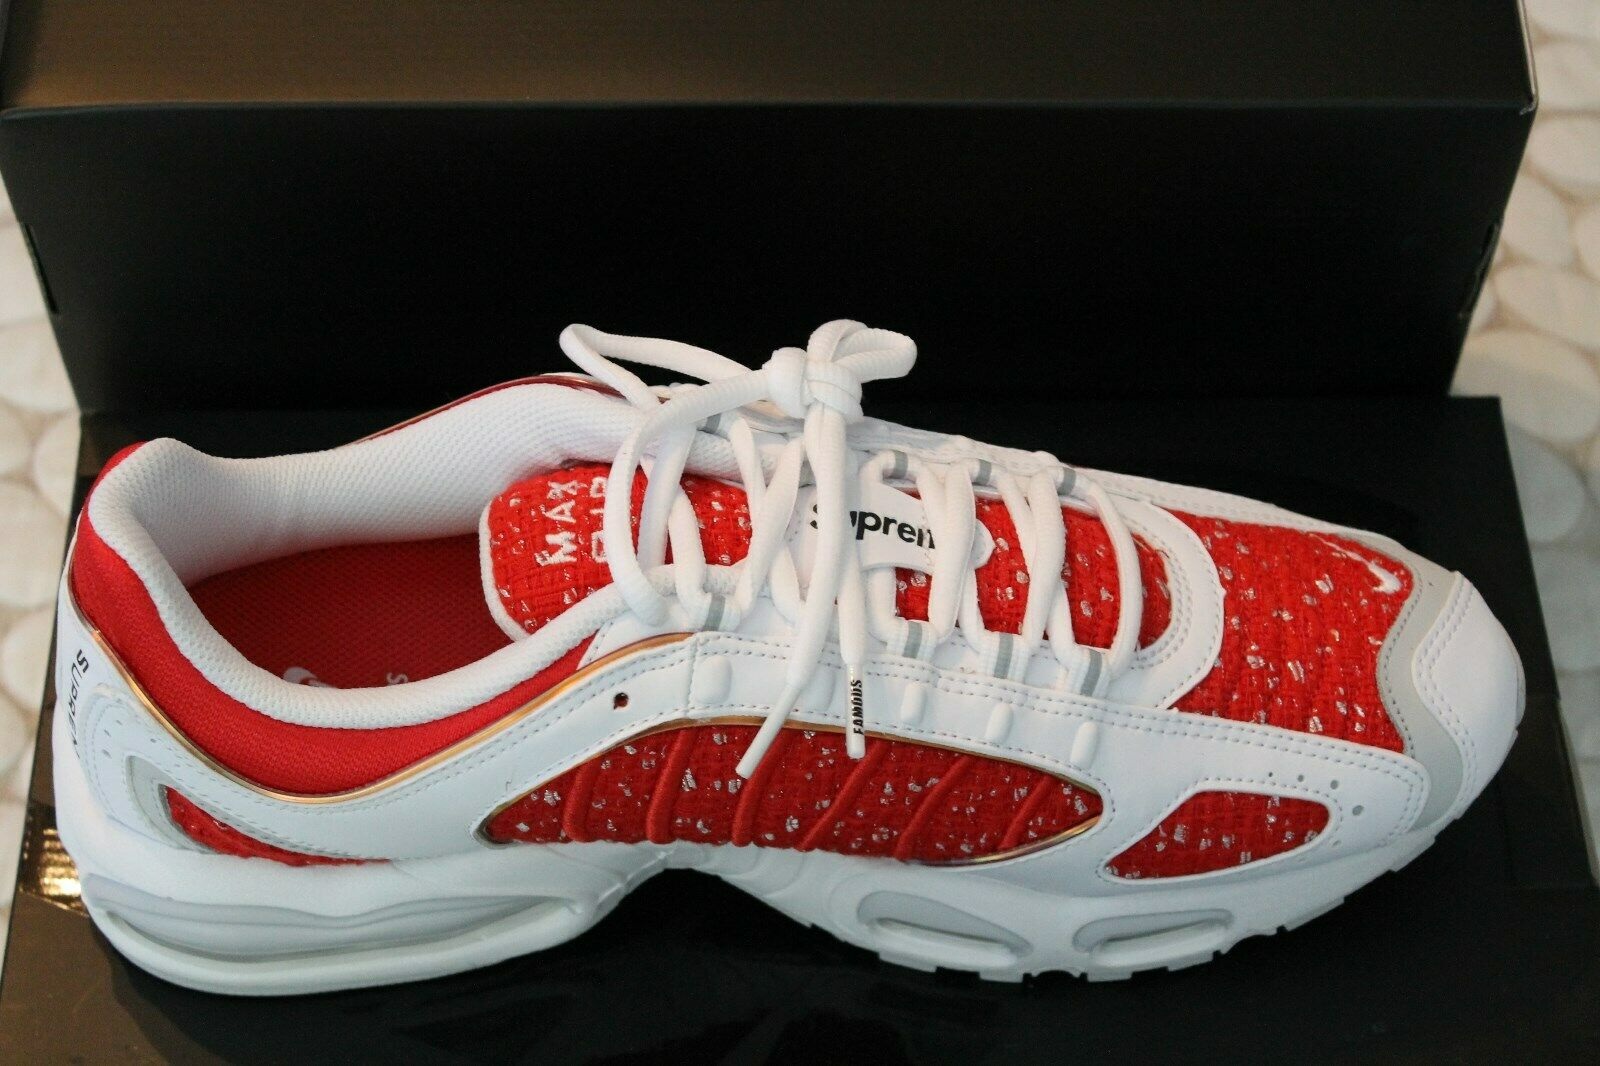 Nike Air Max Tailwind 4 IV Supreme White Red AT3854-100 Size 12 100% Authentic